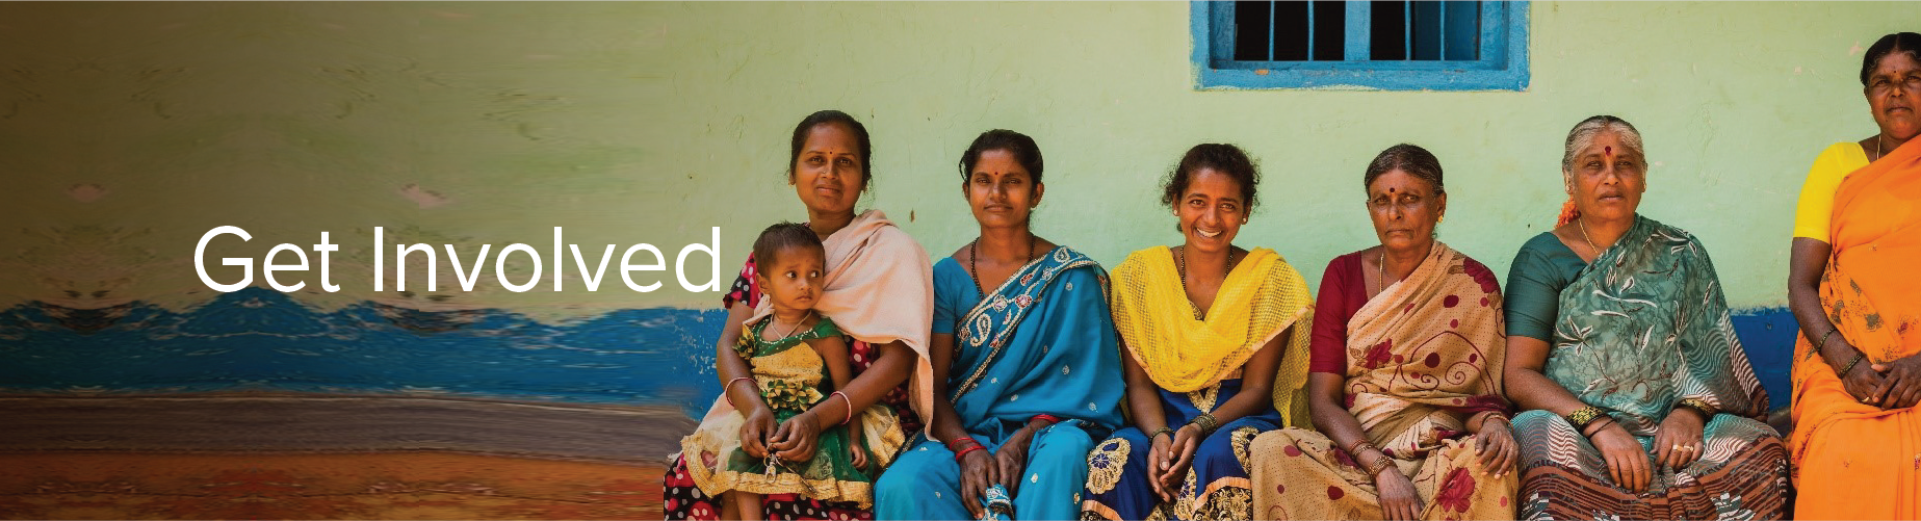 Get Involved - Reimagining India's Health System - The Lancet Citizens' Commission